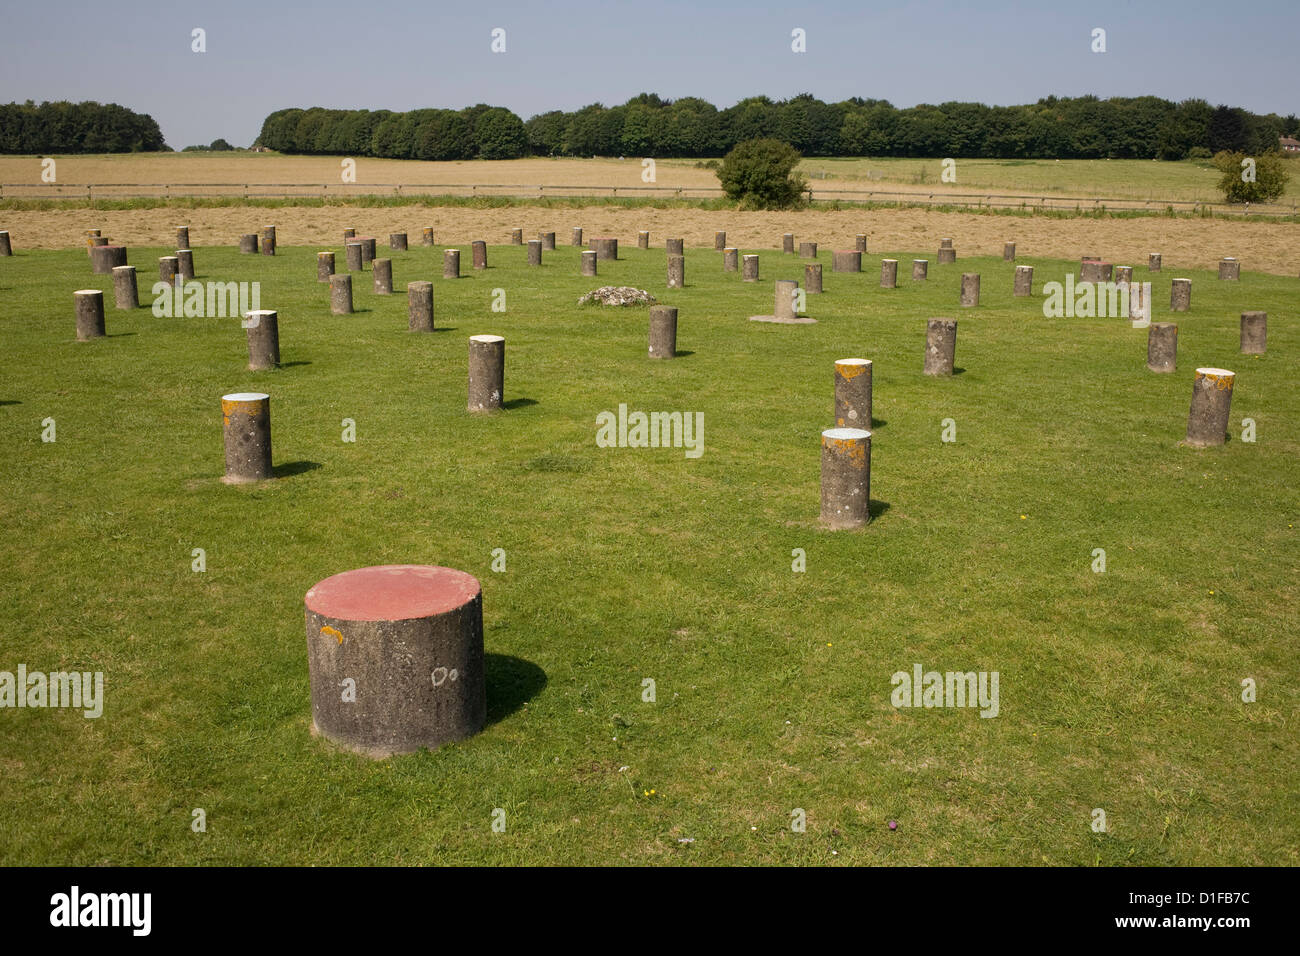 Woodhenge, concrete posts now stand where wooden posts did, Amesbury, Wiltshire, England, United Kingdom, Europe - Stock Image